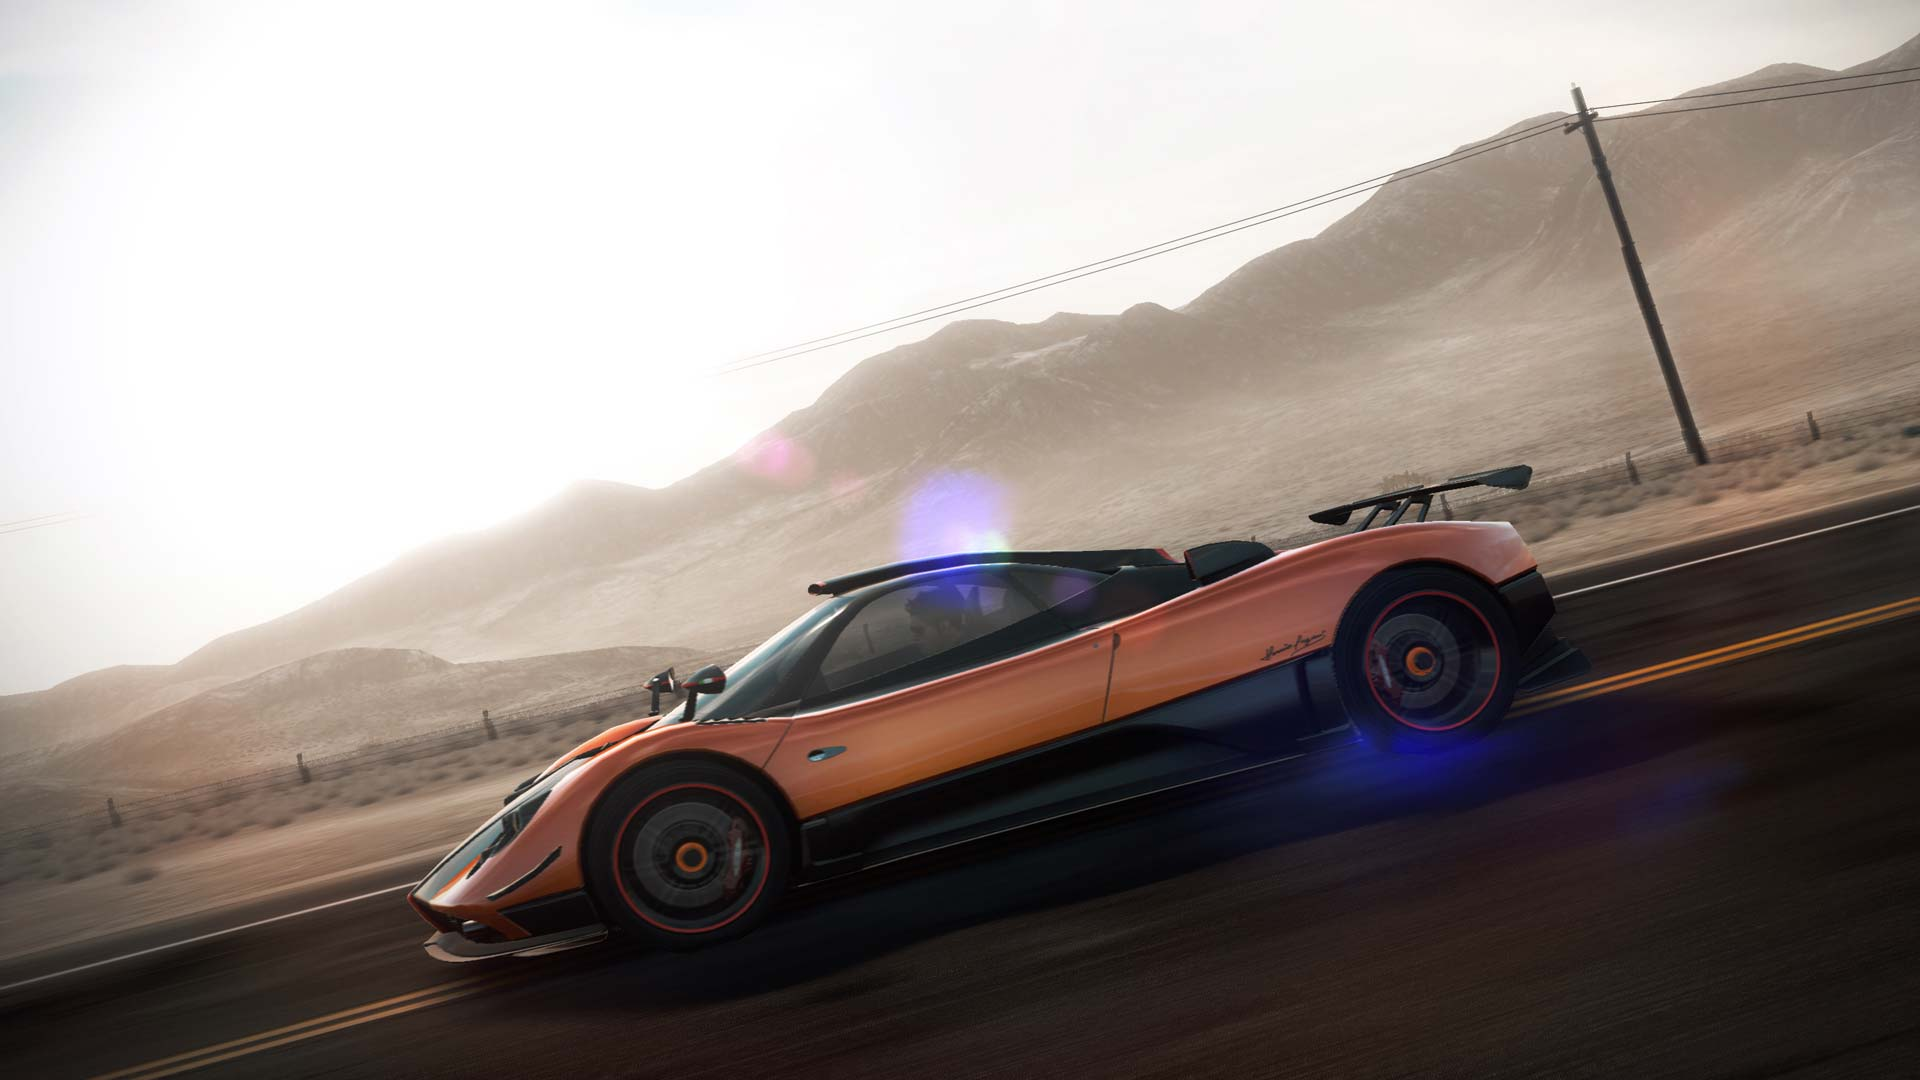 Place 4 out of 10: Need for Speed: Hot Pursuit